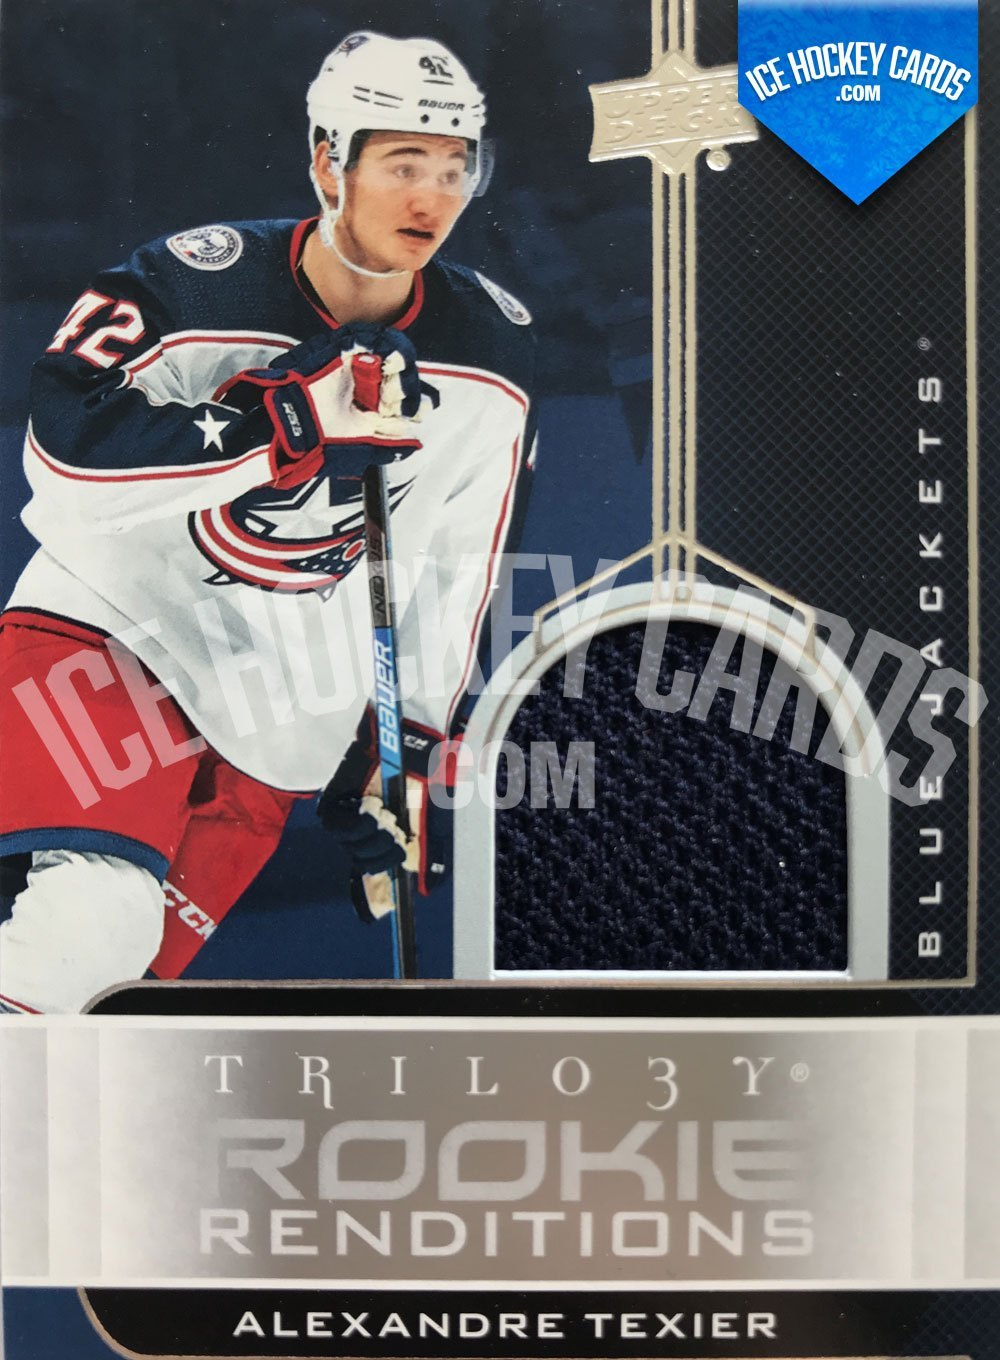 Upper Deck - Trilogy 19-20 - Alexandre Teixier Rookie Renditions Patch